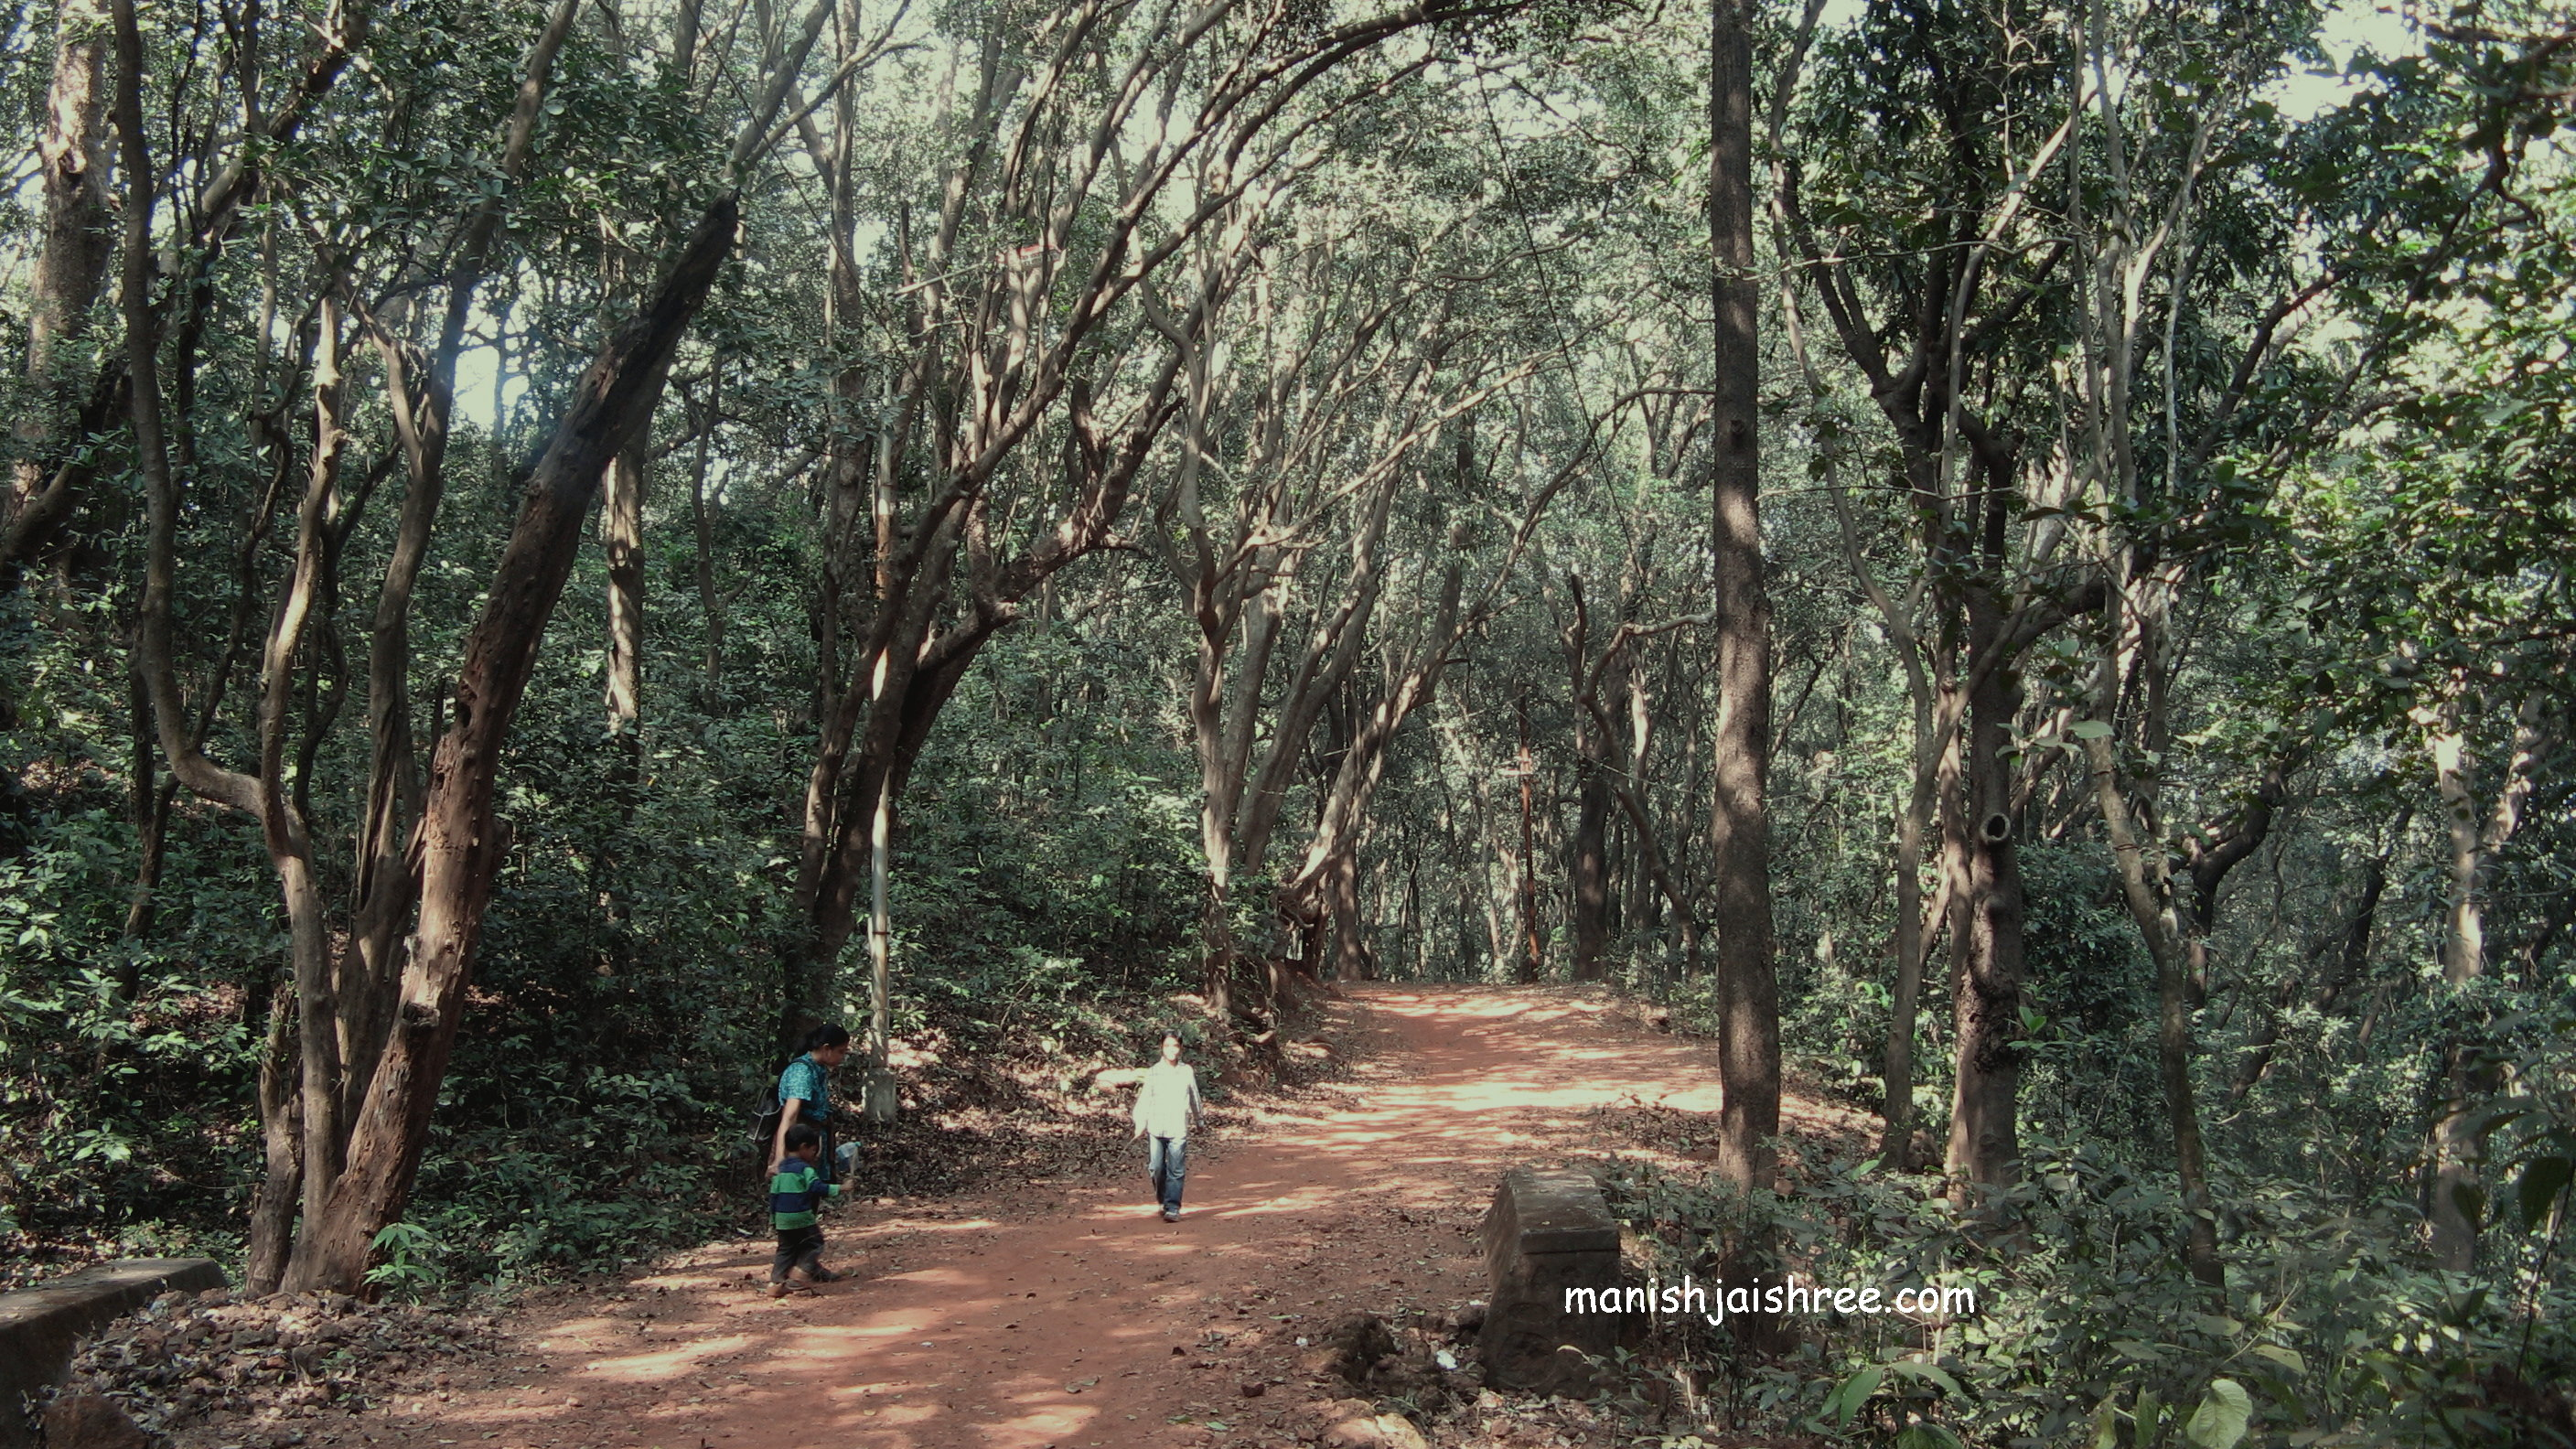 Wandering in the wild Matheran